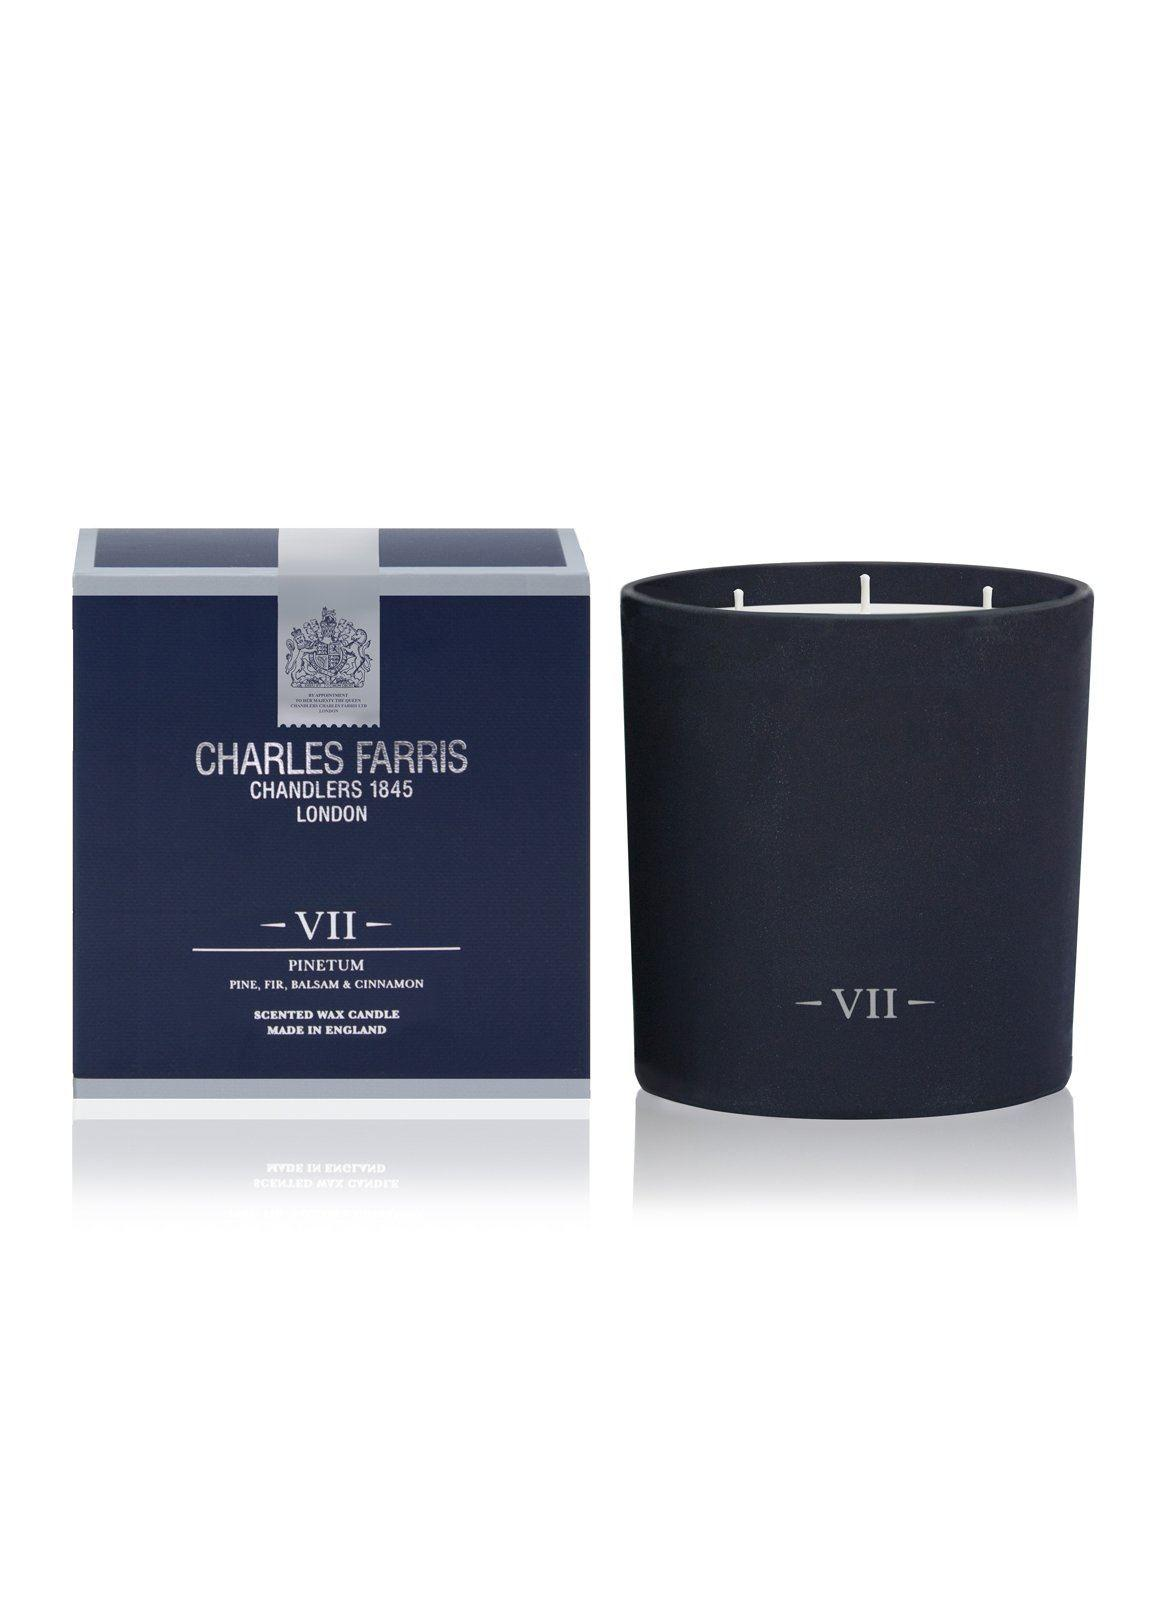 Charles Farris Pinetum 3 Wick Candle